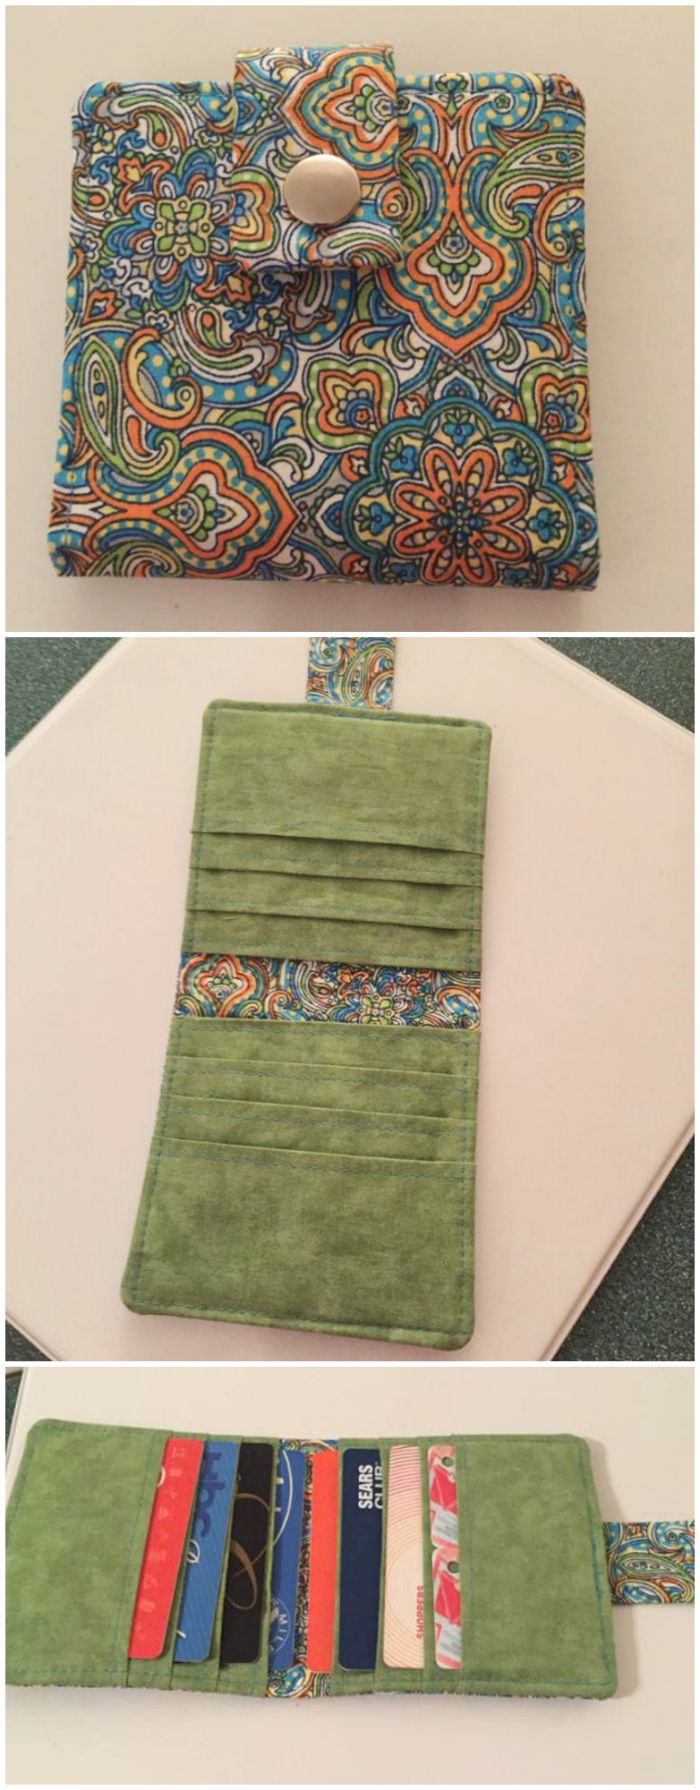 How to sew a simple wallet, plus 2 more advanced wallet projects. 3 sewing patterns included.